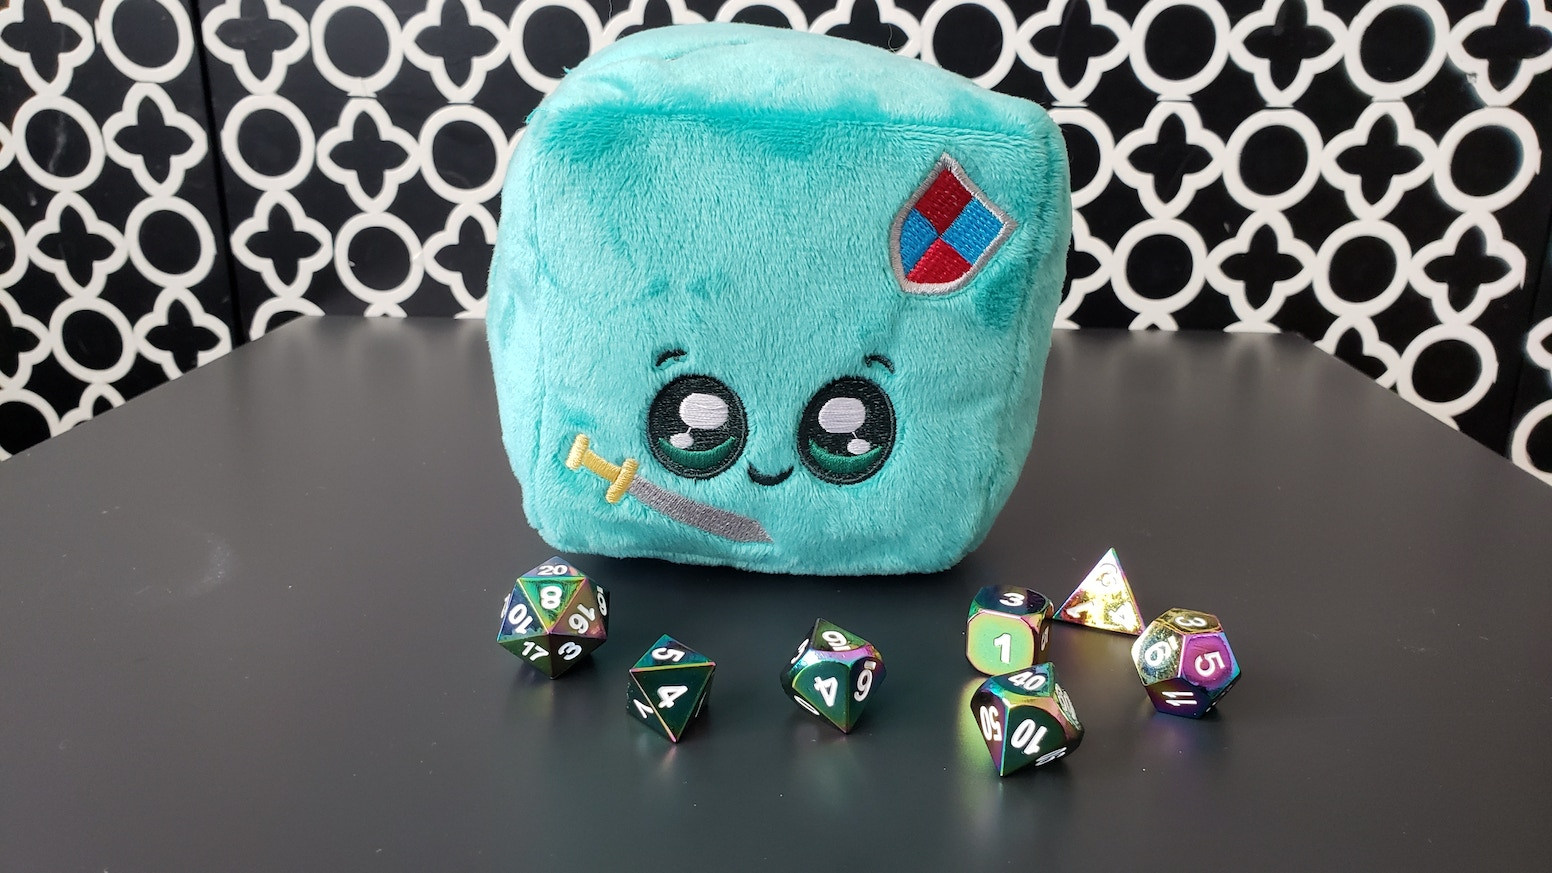 Lord Gelbert Jellington is a Gelatinous Plush Dice Pouch that can keep your favorite set of polyhedral dice safe and cozy.